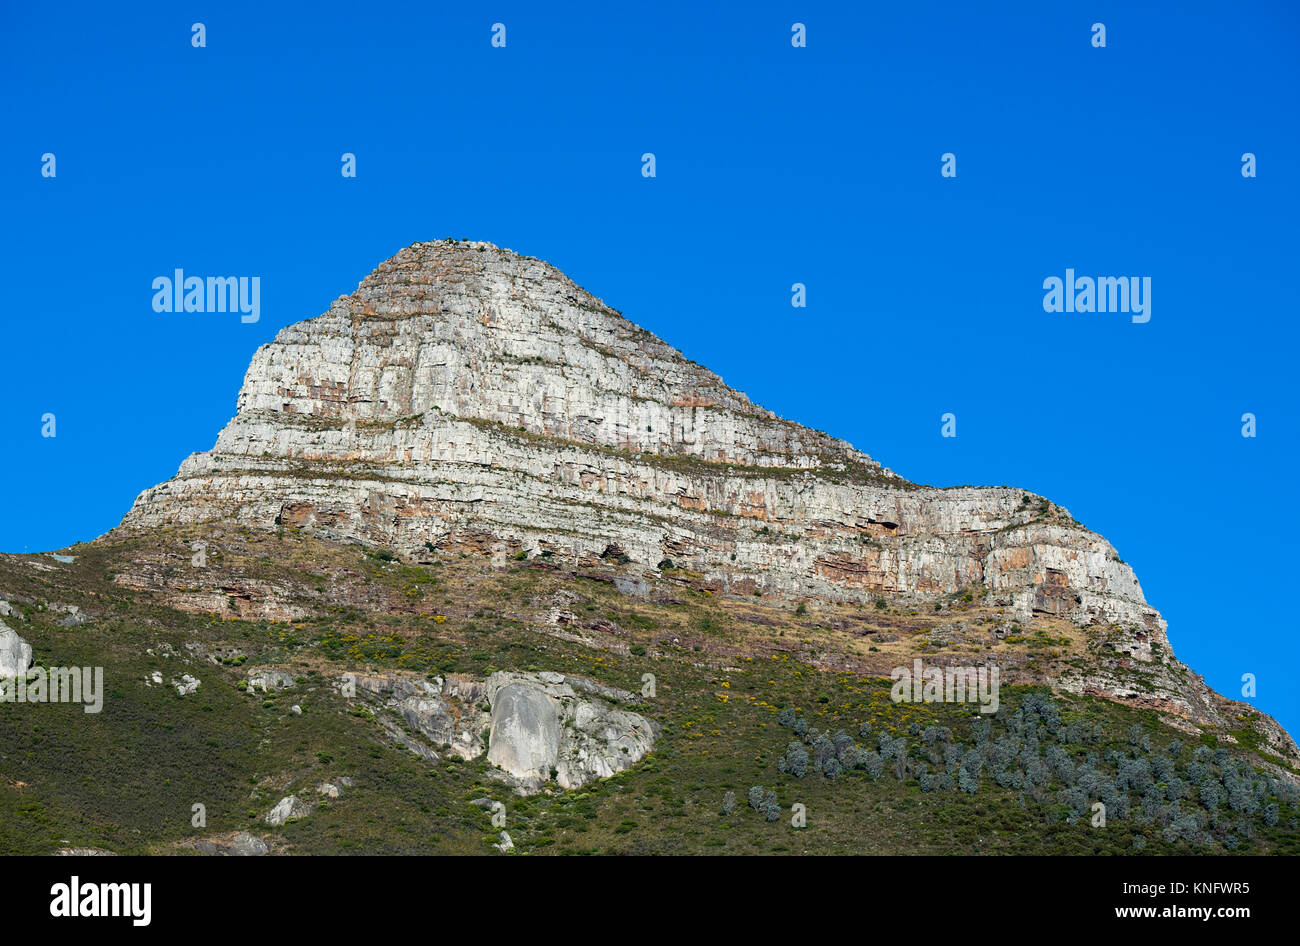 The rock formation known as Lion's Head in Cape Town, South Africa - Stock Image